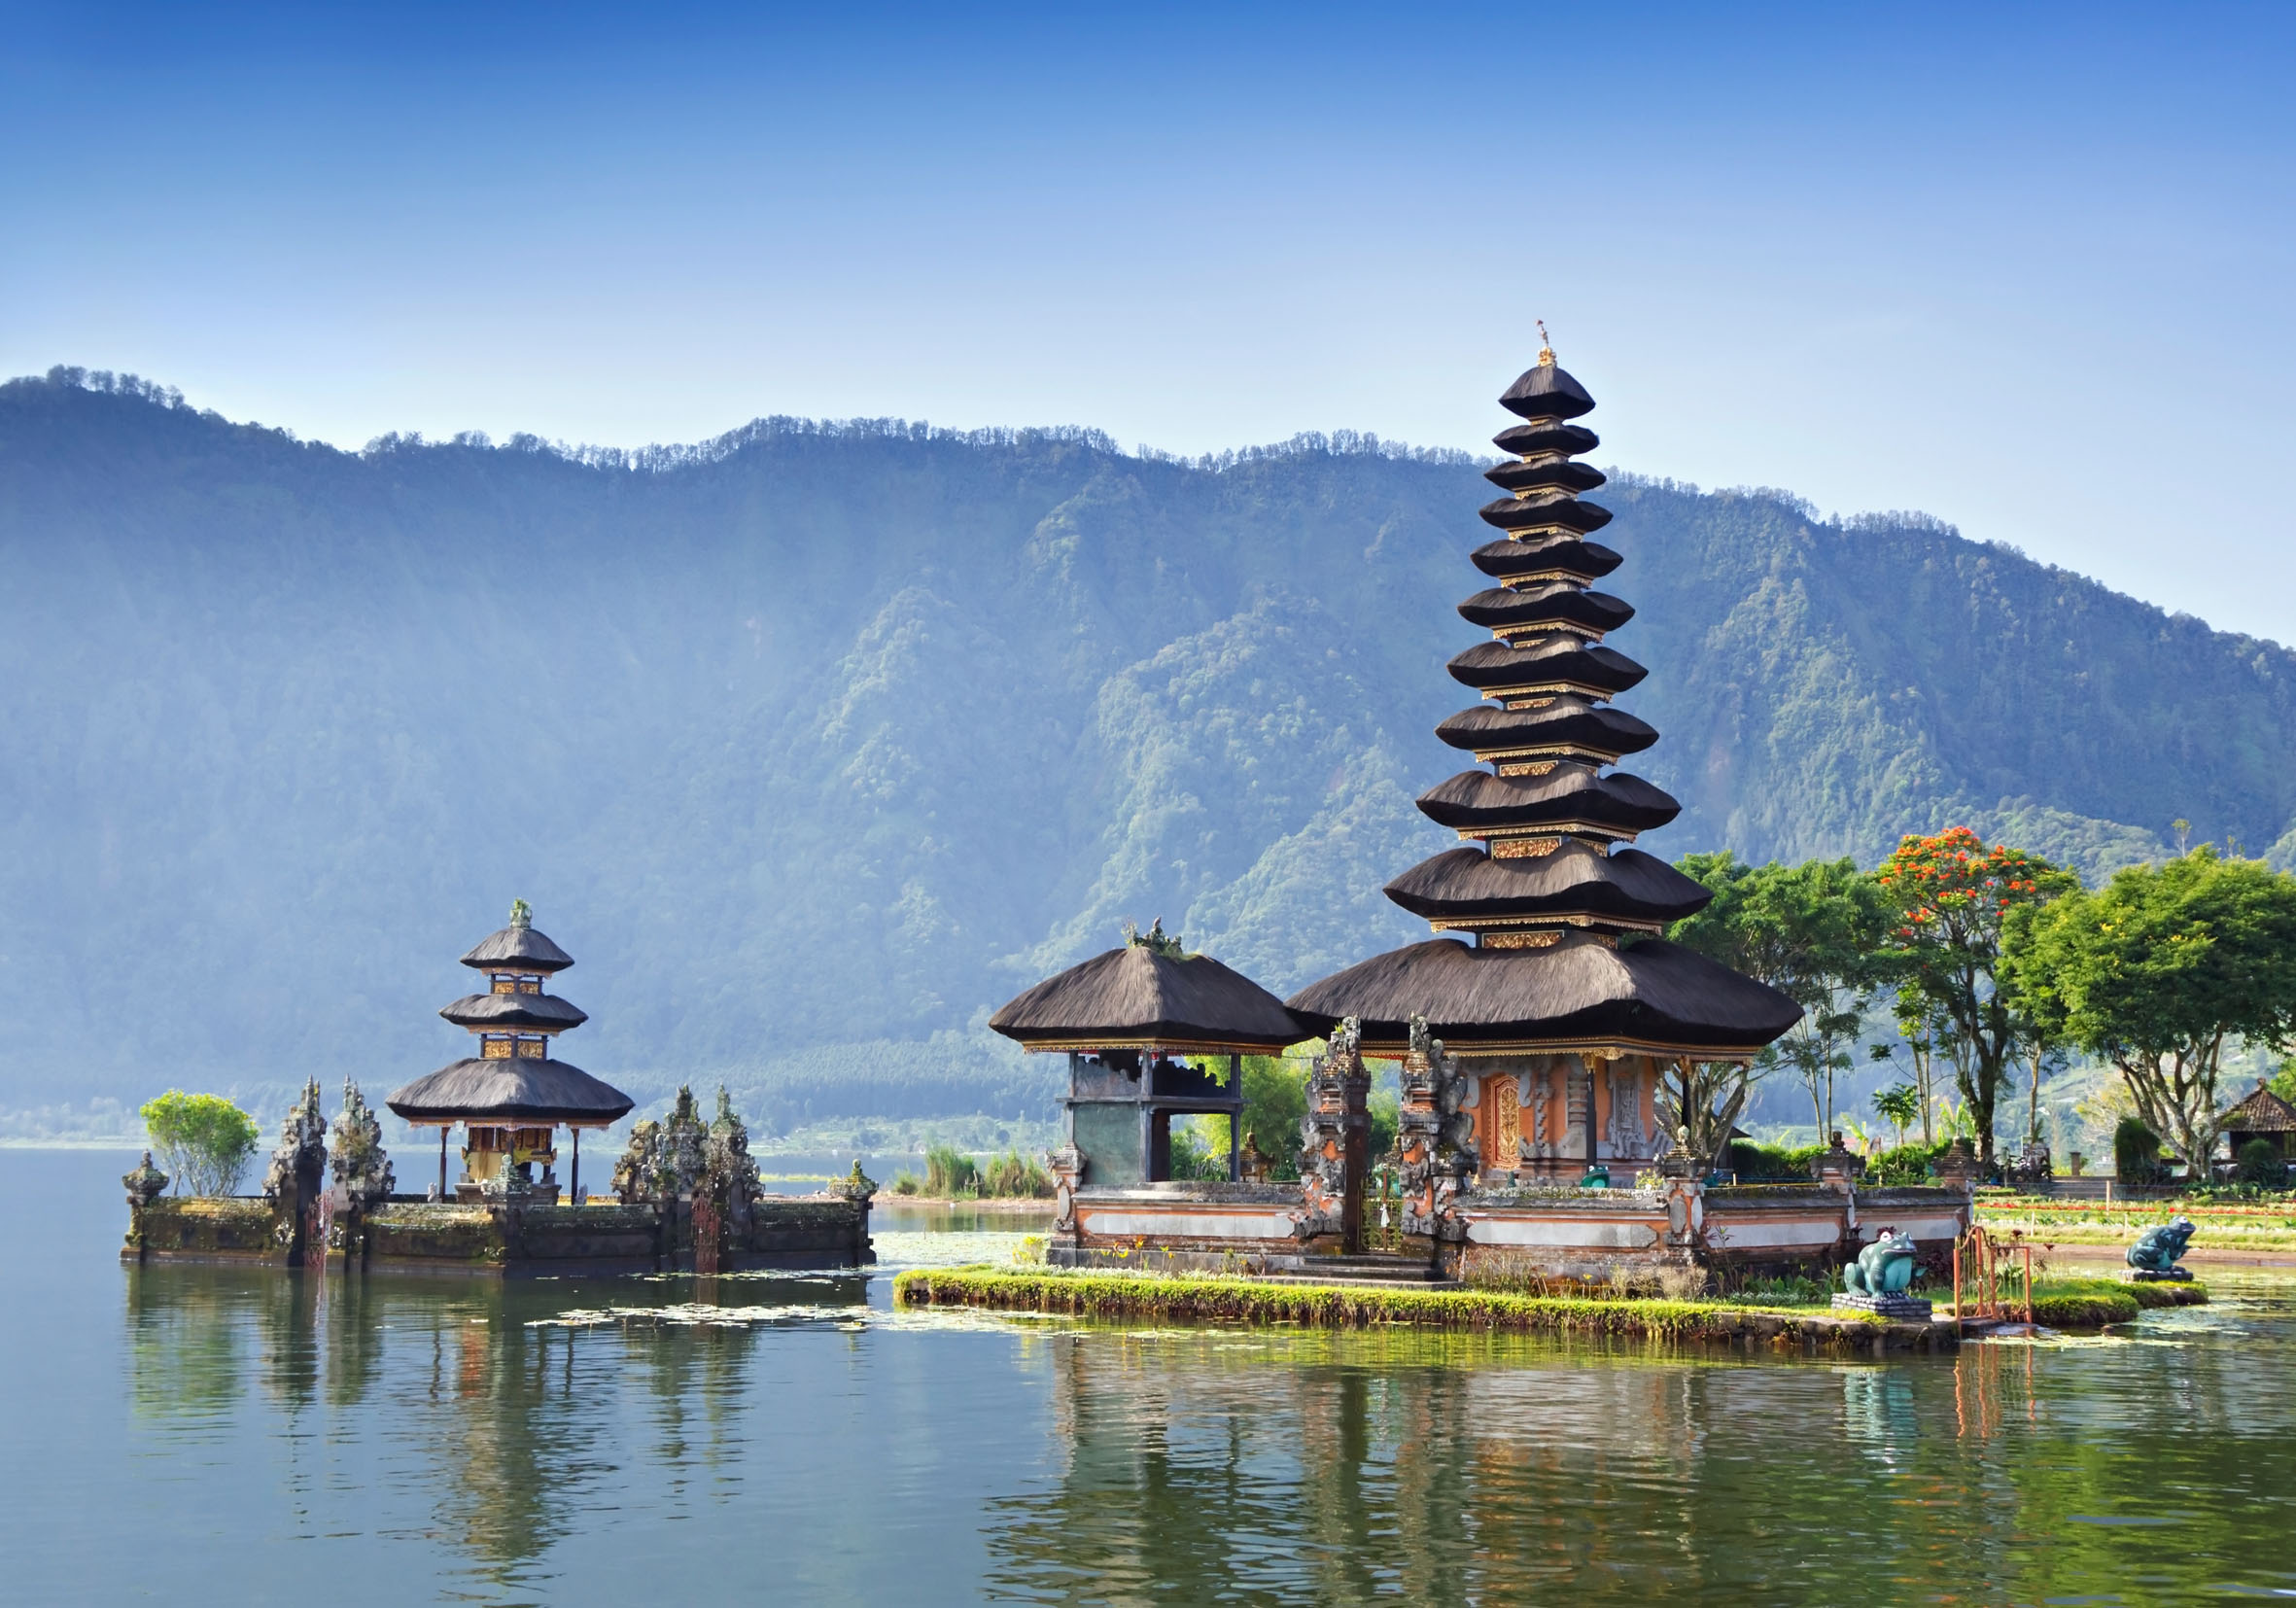 Bali Indonesia  City new picture : Bedugul is a mountain lake resort area in Bali, Indonesia, located in ...